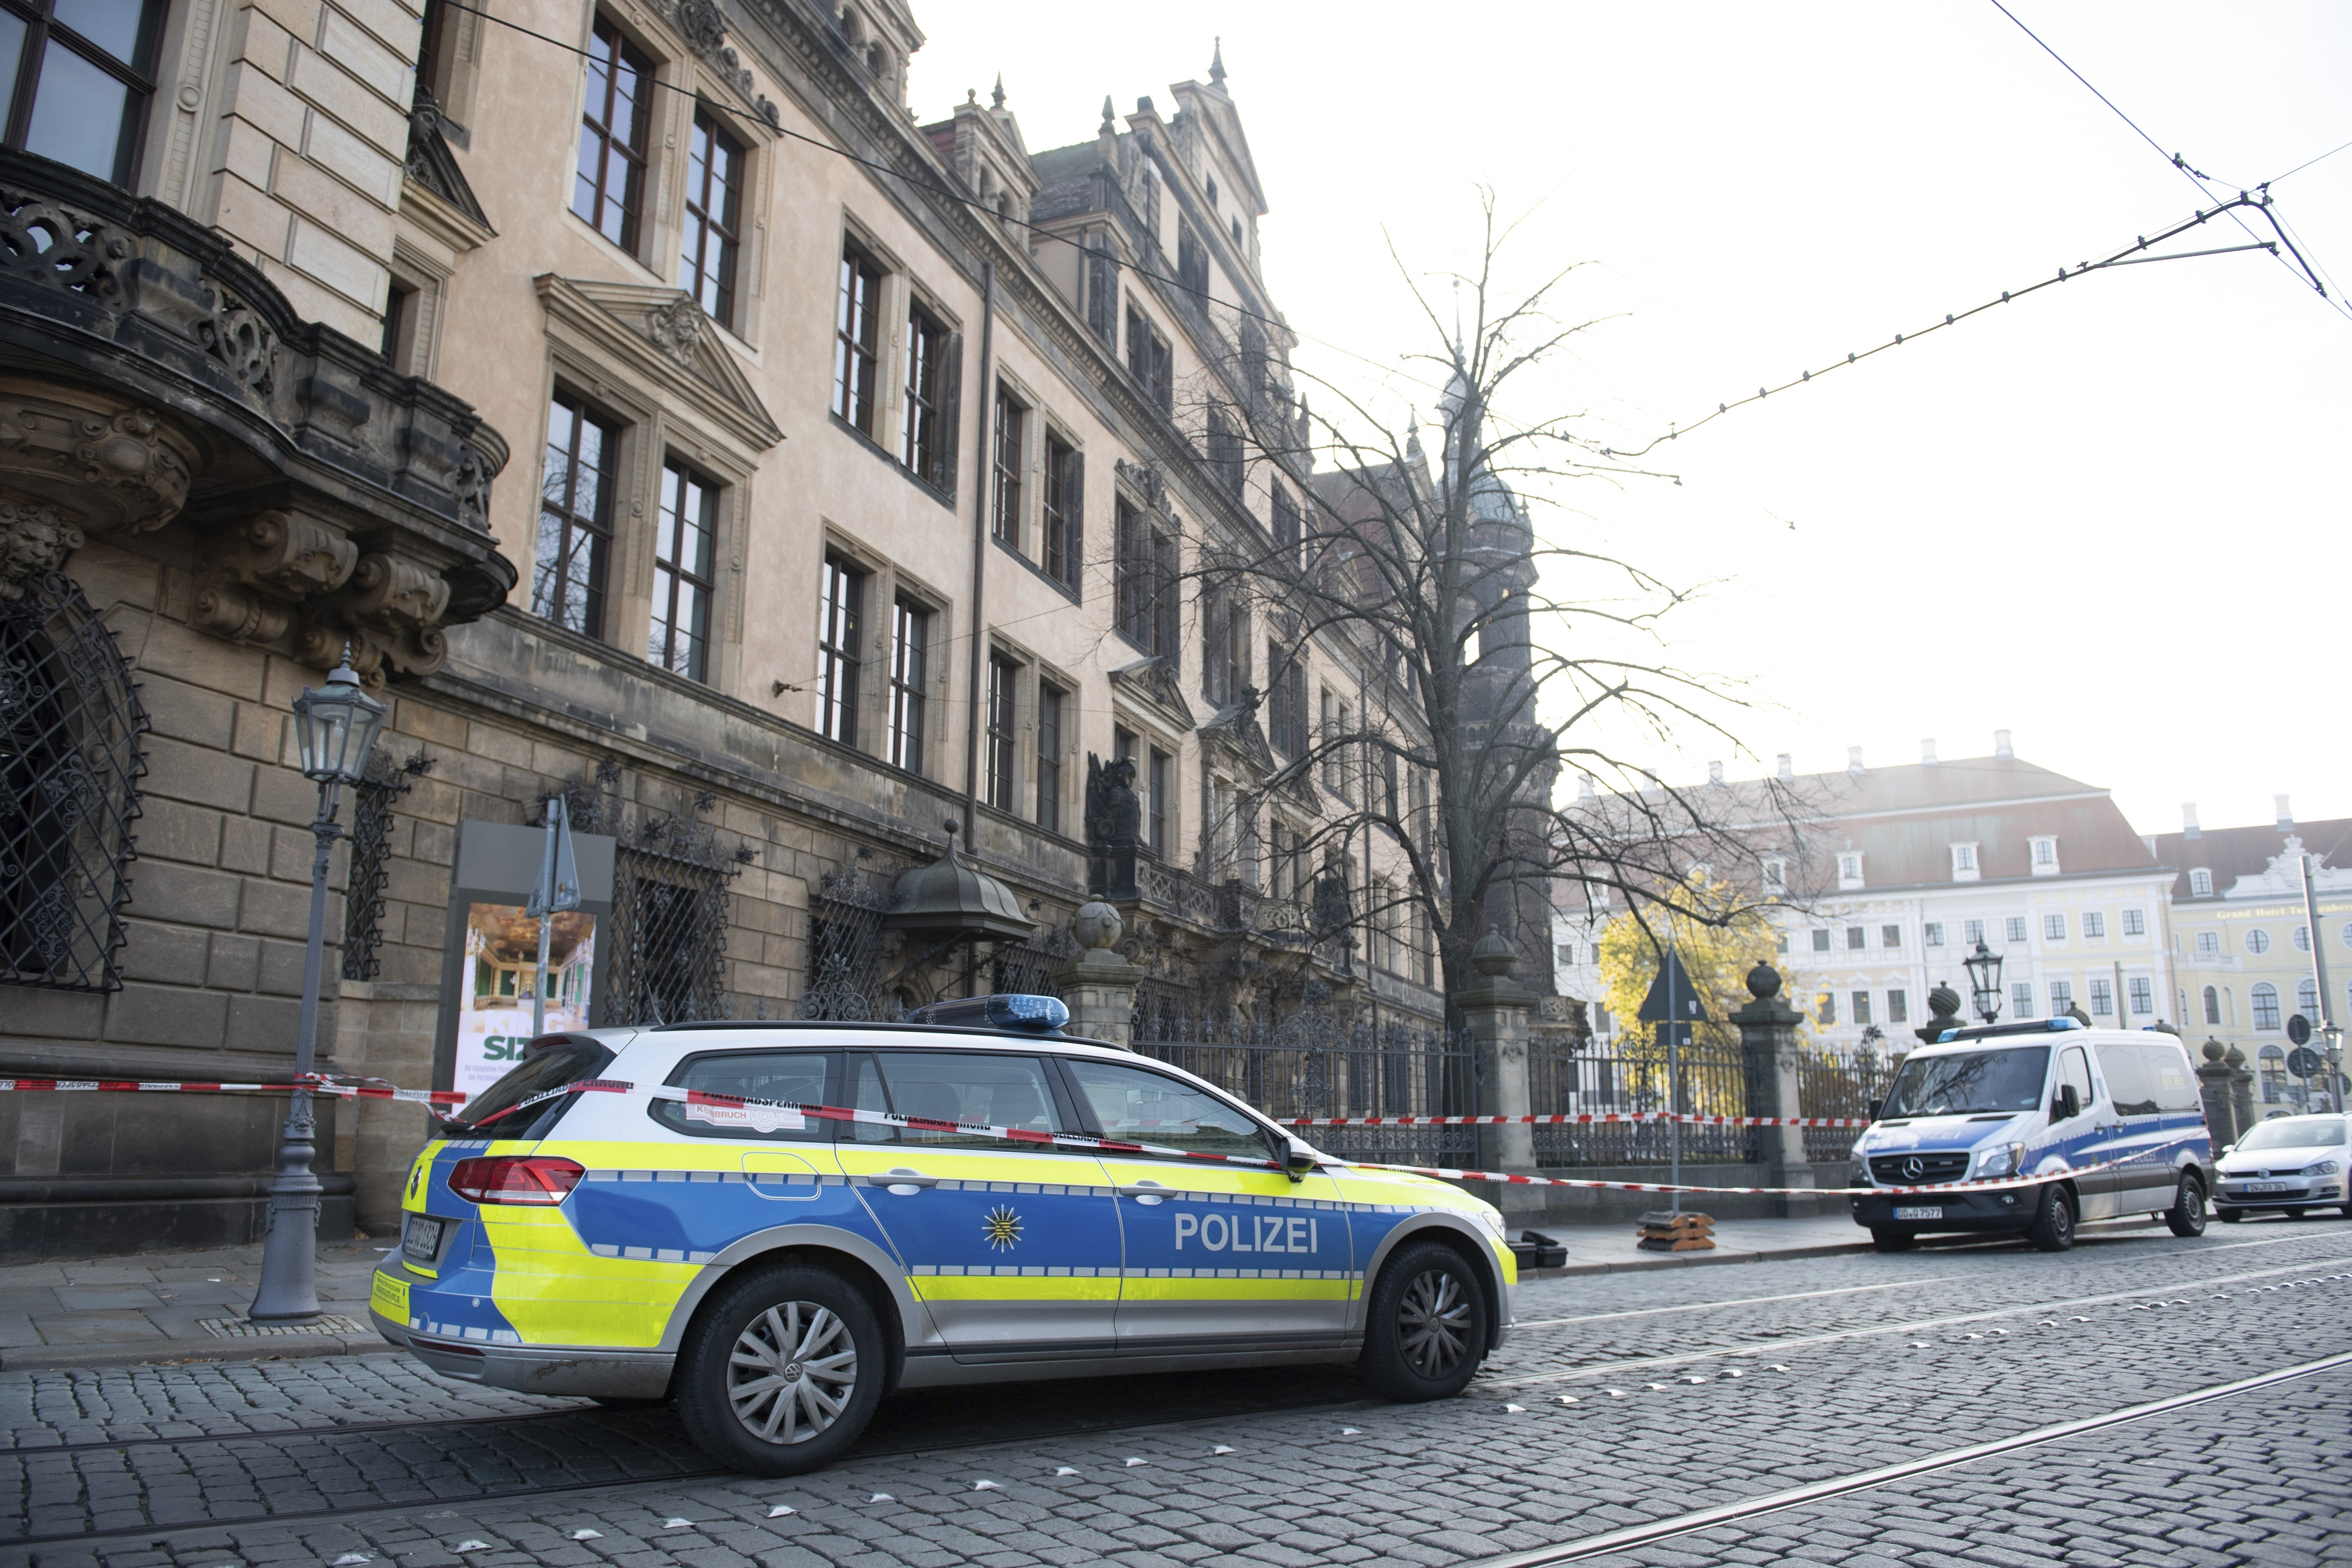 Police cars stand in front of the Residenzschloss, Residence Palace, building in Dresden Monday, Nov. 25, 2019. (Sebastian Kahnert/dpa via AP)